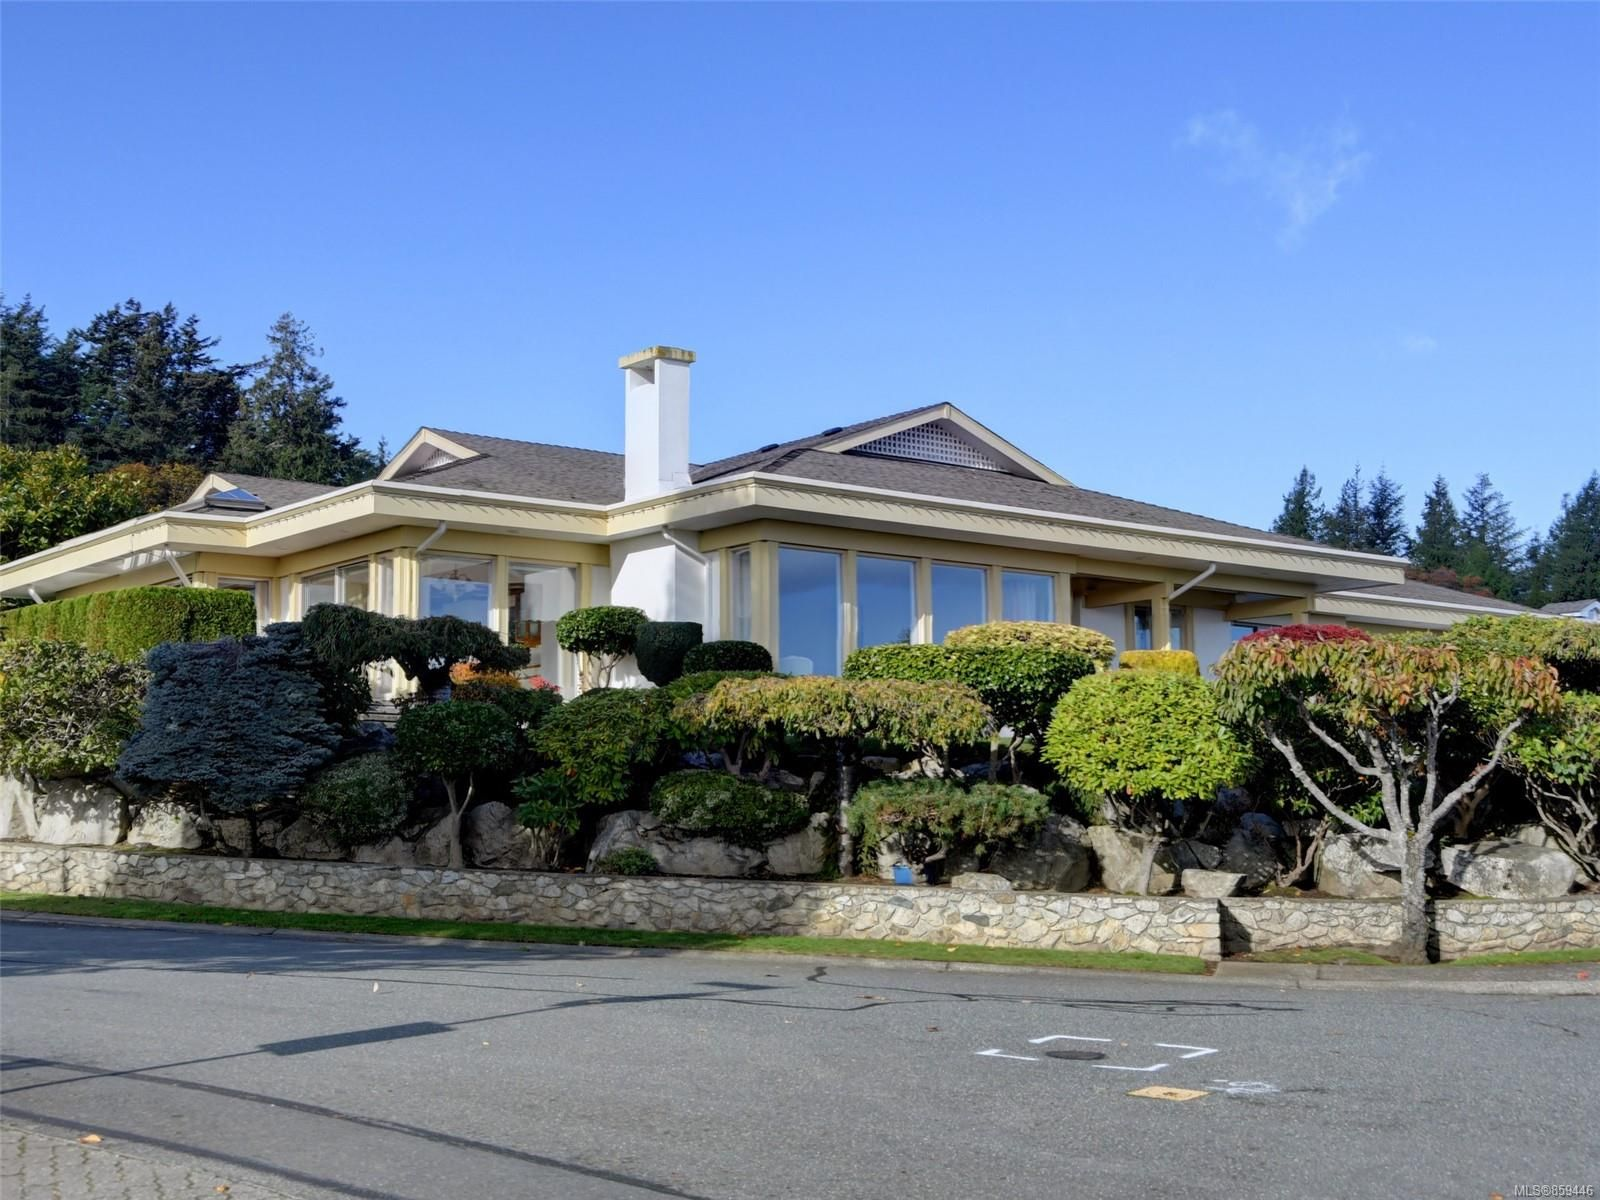 Main Photo: 4870 Sea Ridge Dr in : SE Cordova Bay House for sale (Saanich East)  : MLS®# 859446